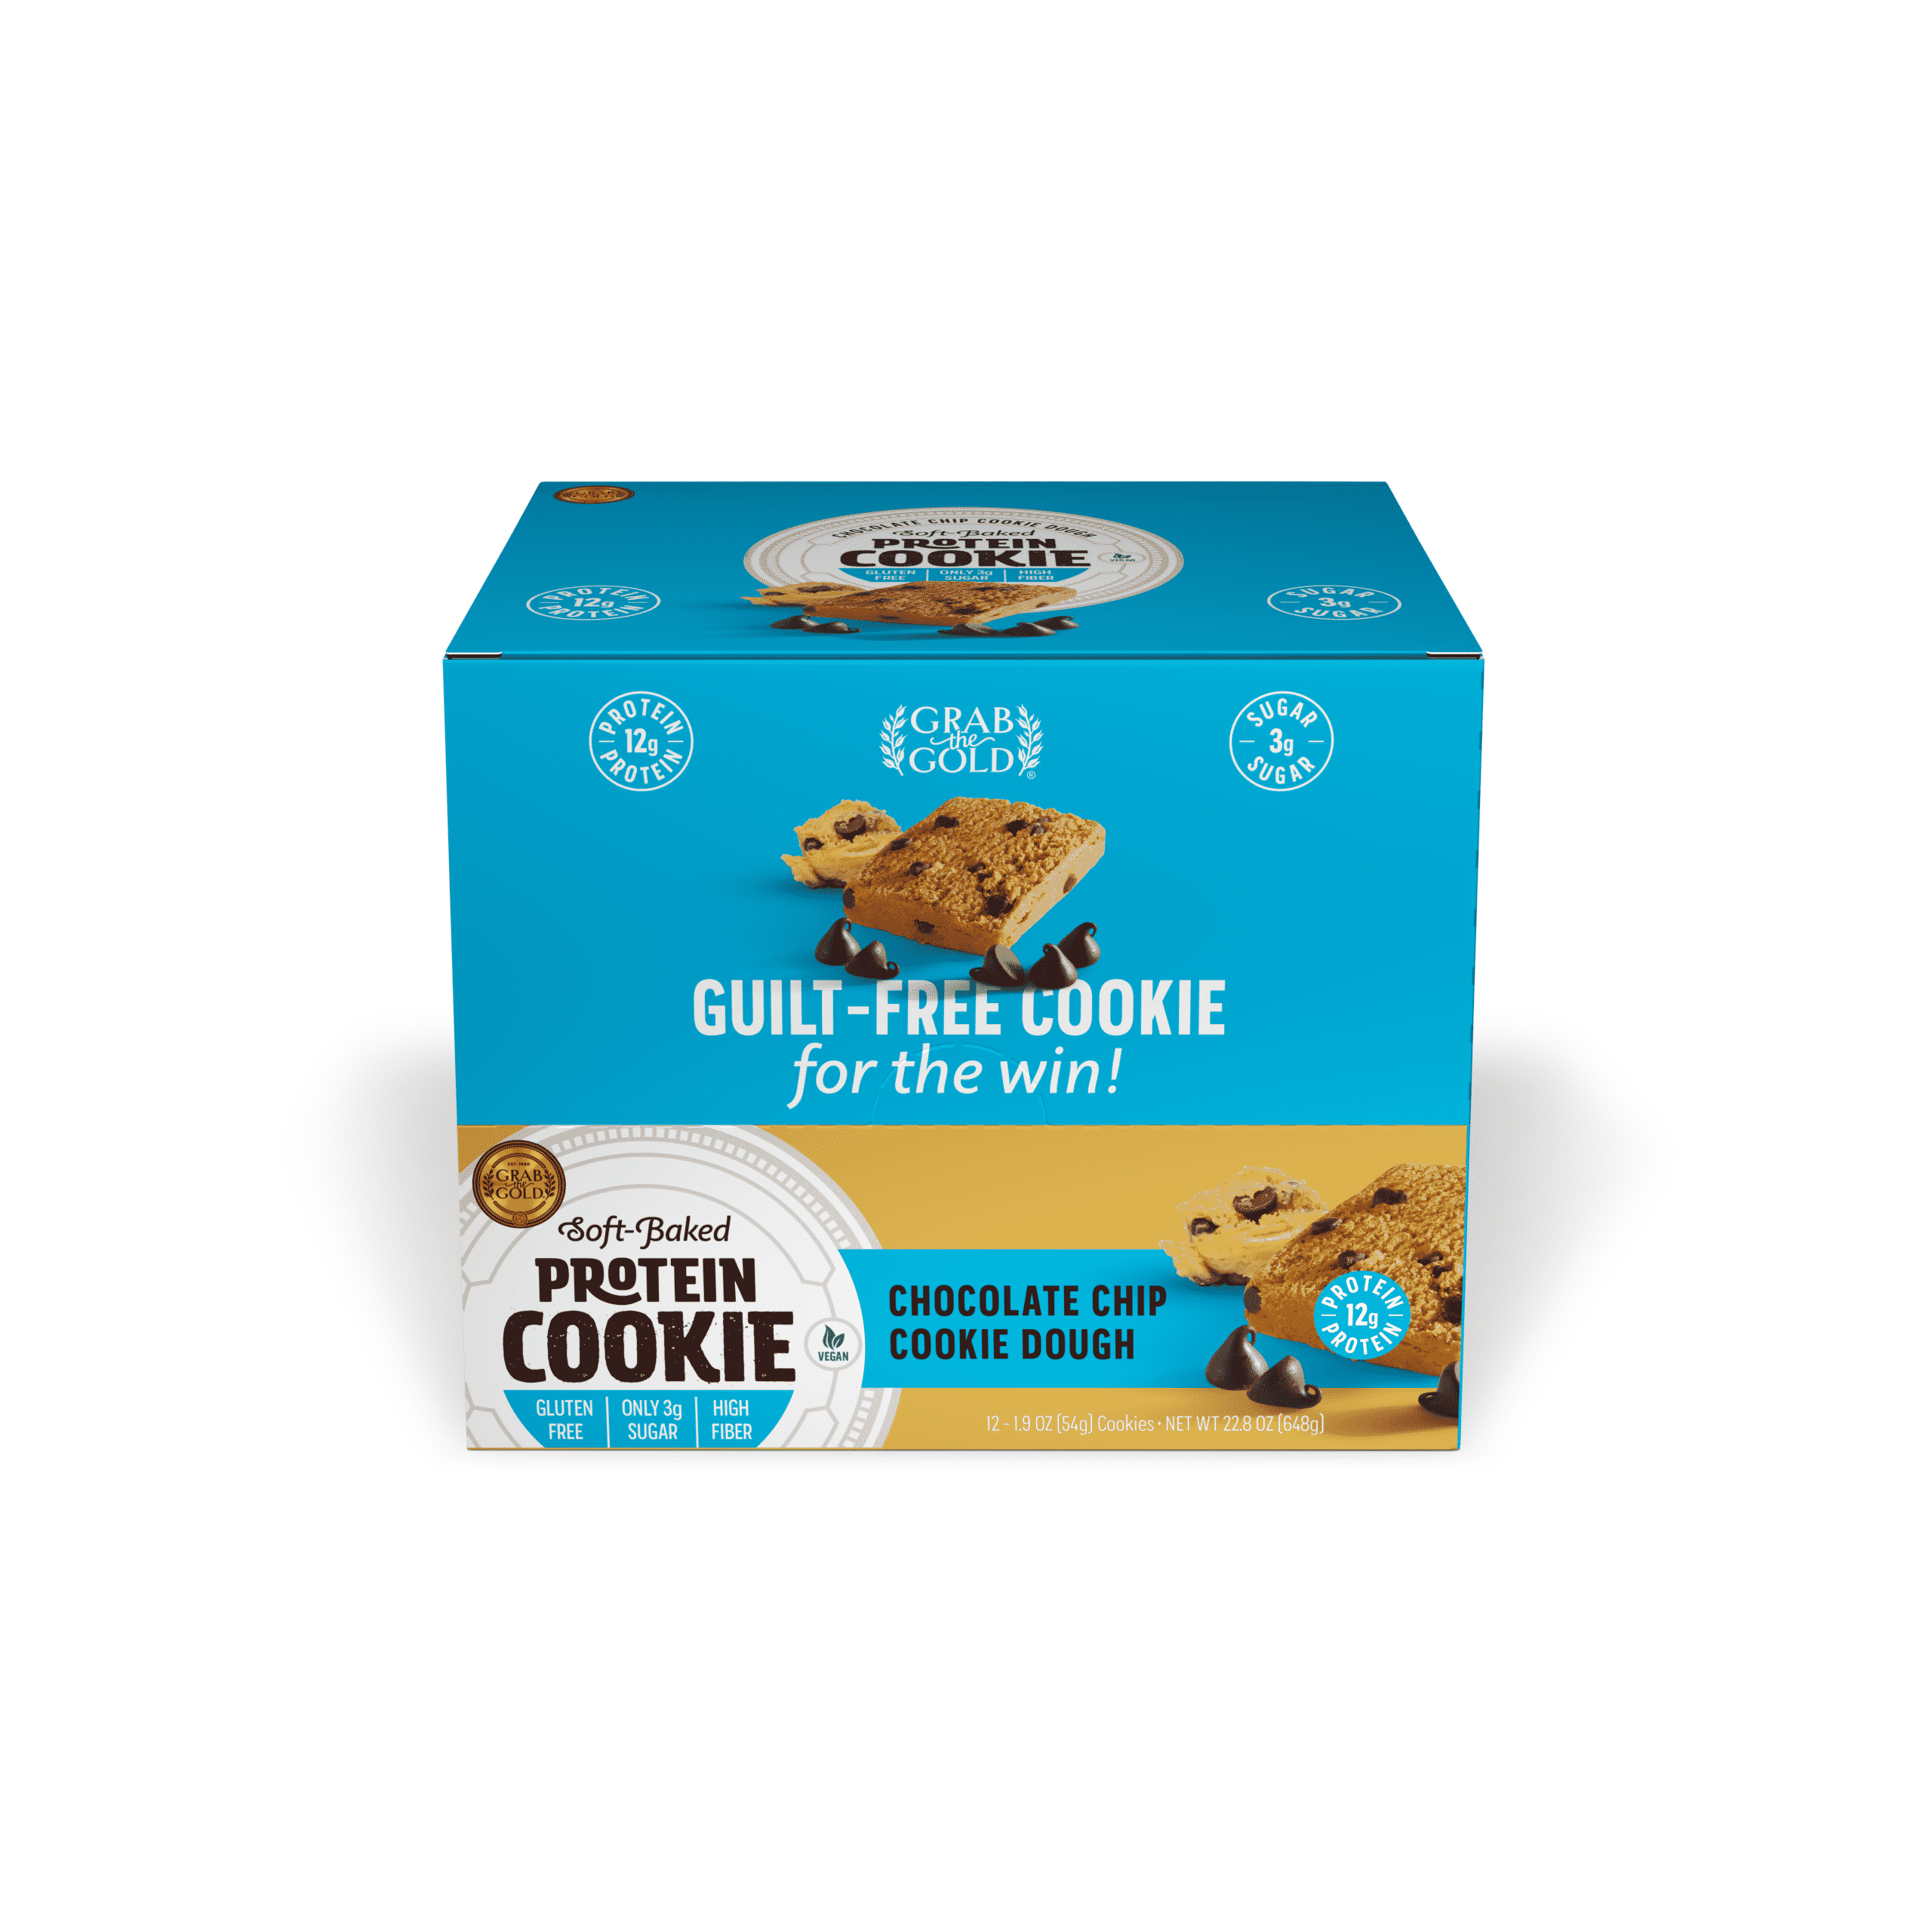 Grab The Gold Protein Cookie POS CCD Closed Box 08.20